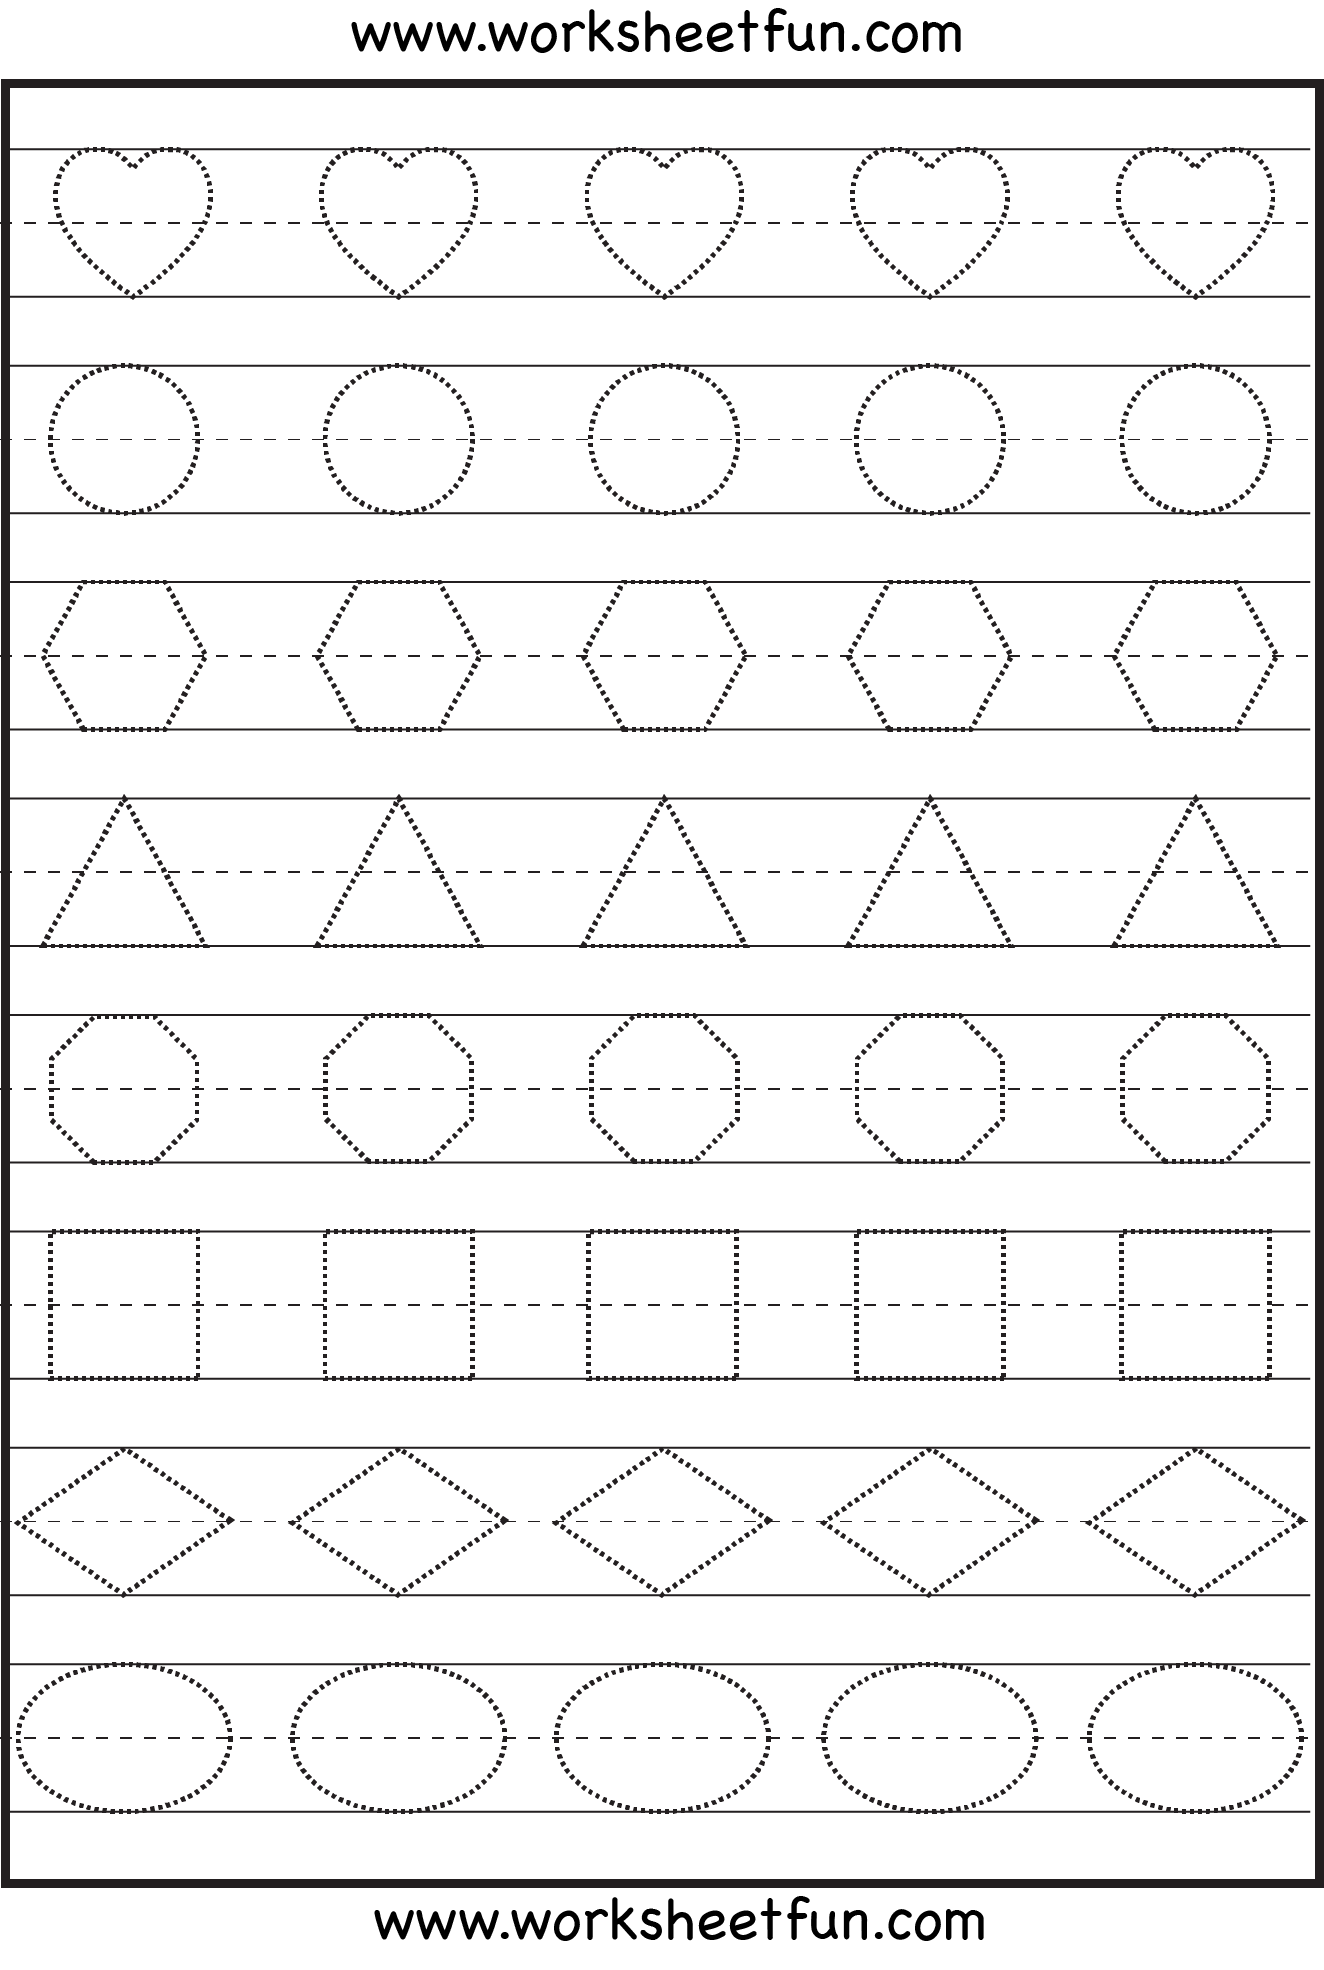 Preschool Printable Images Gallery Category Page 2